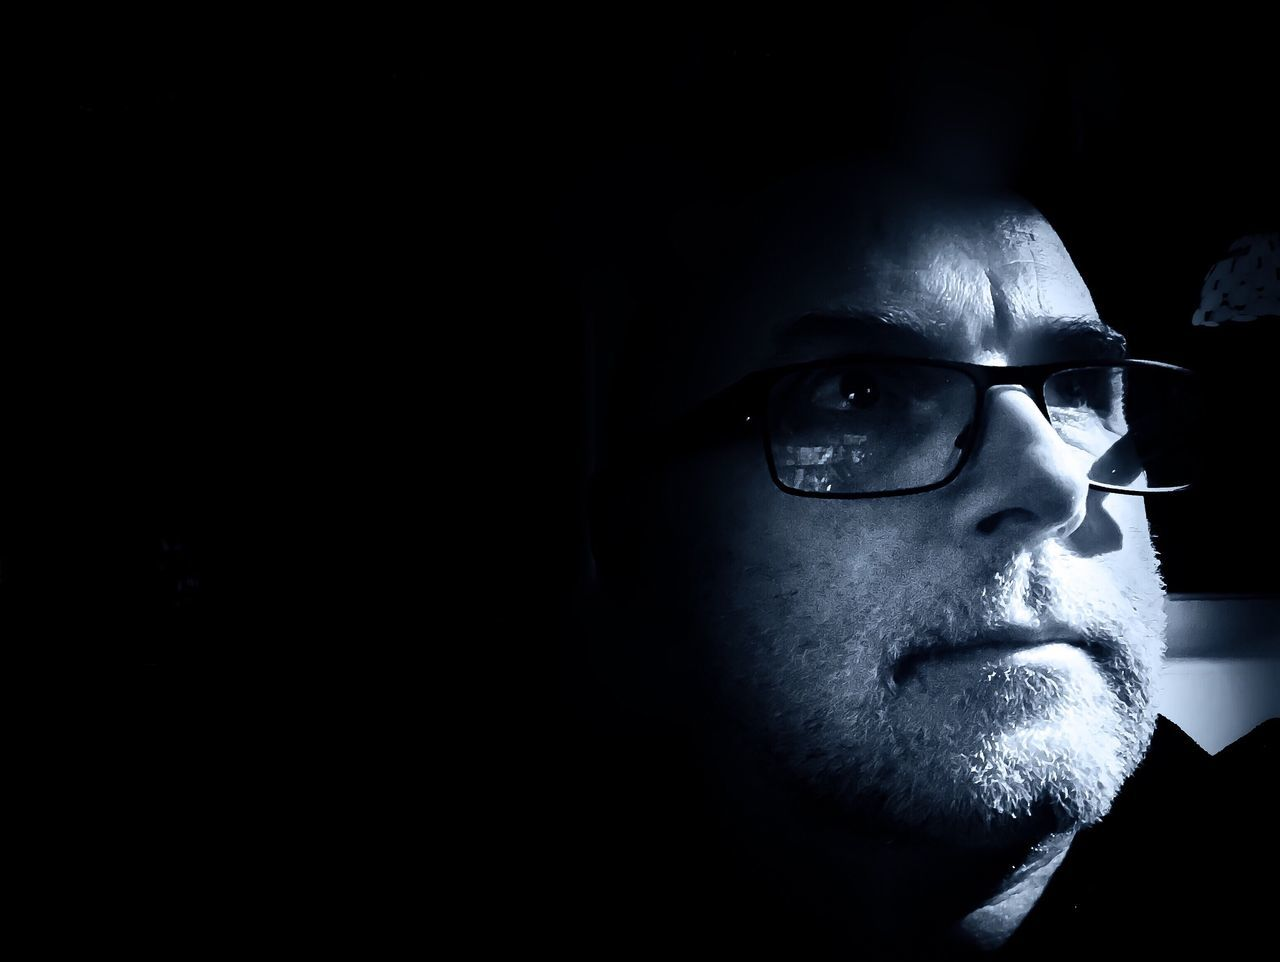 Black And White Serious One Person Black Background Headshot Beard Human Face Shadow Portrait